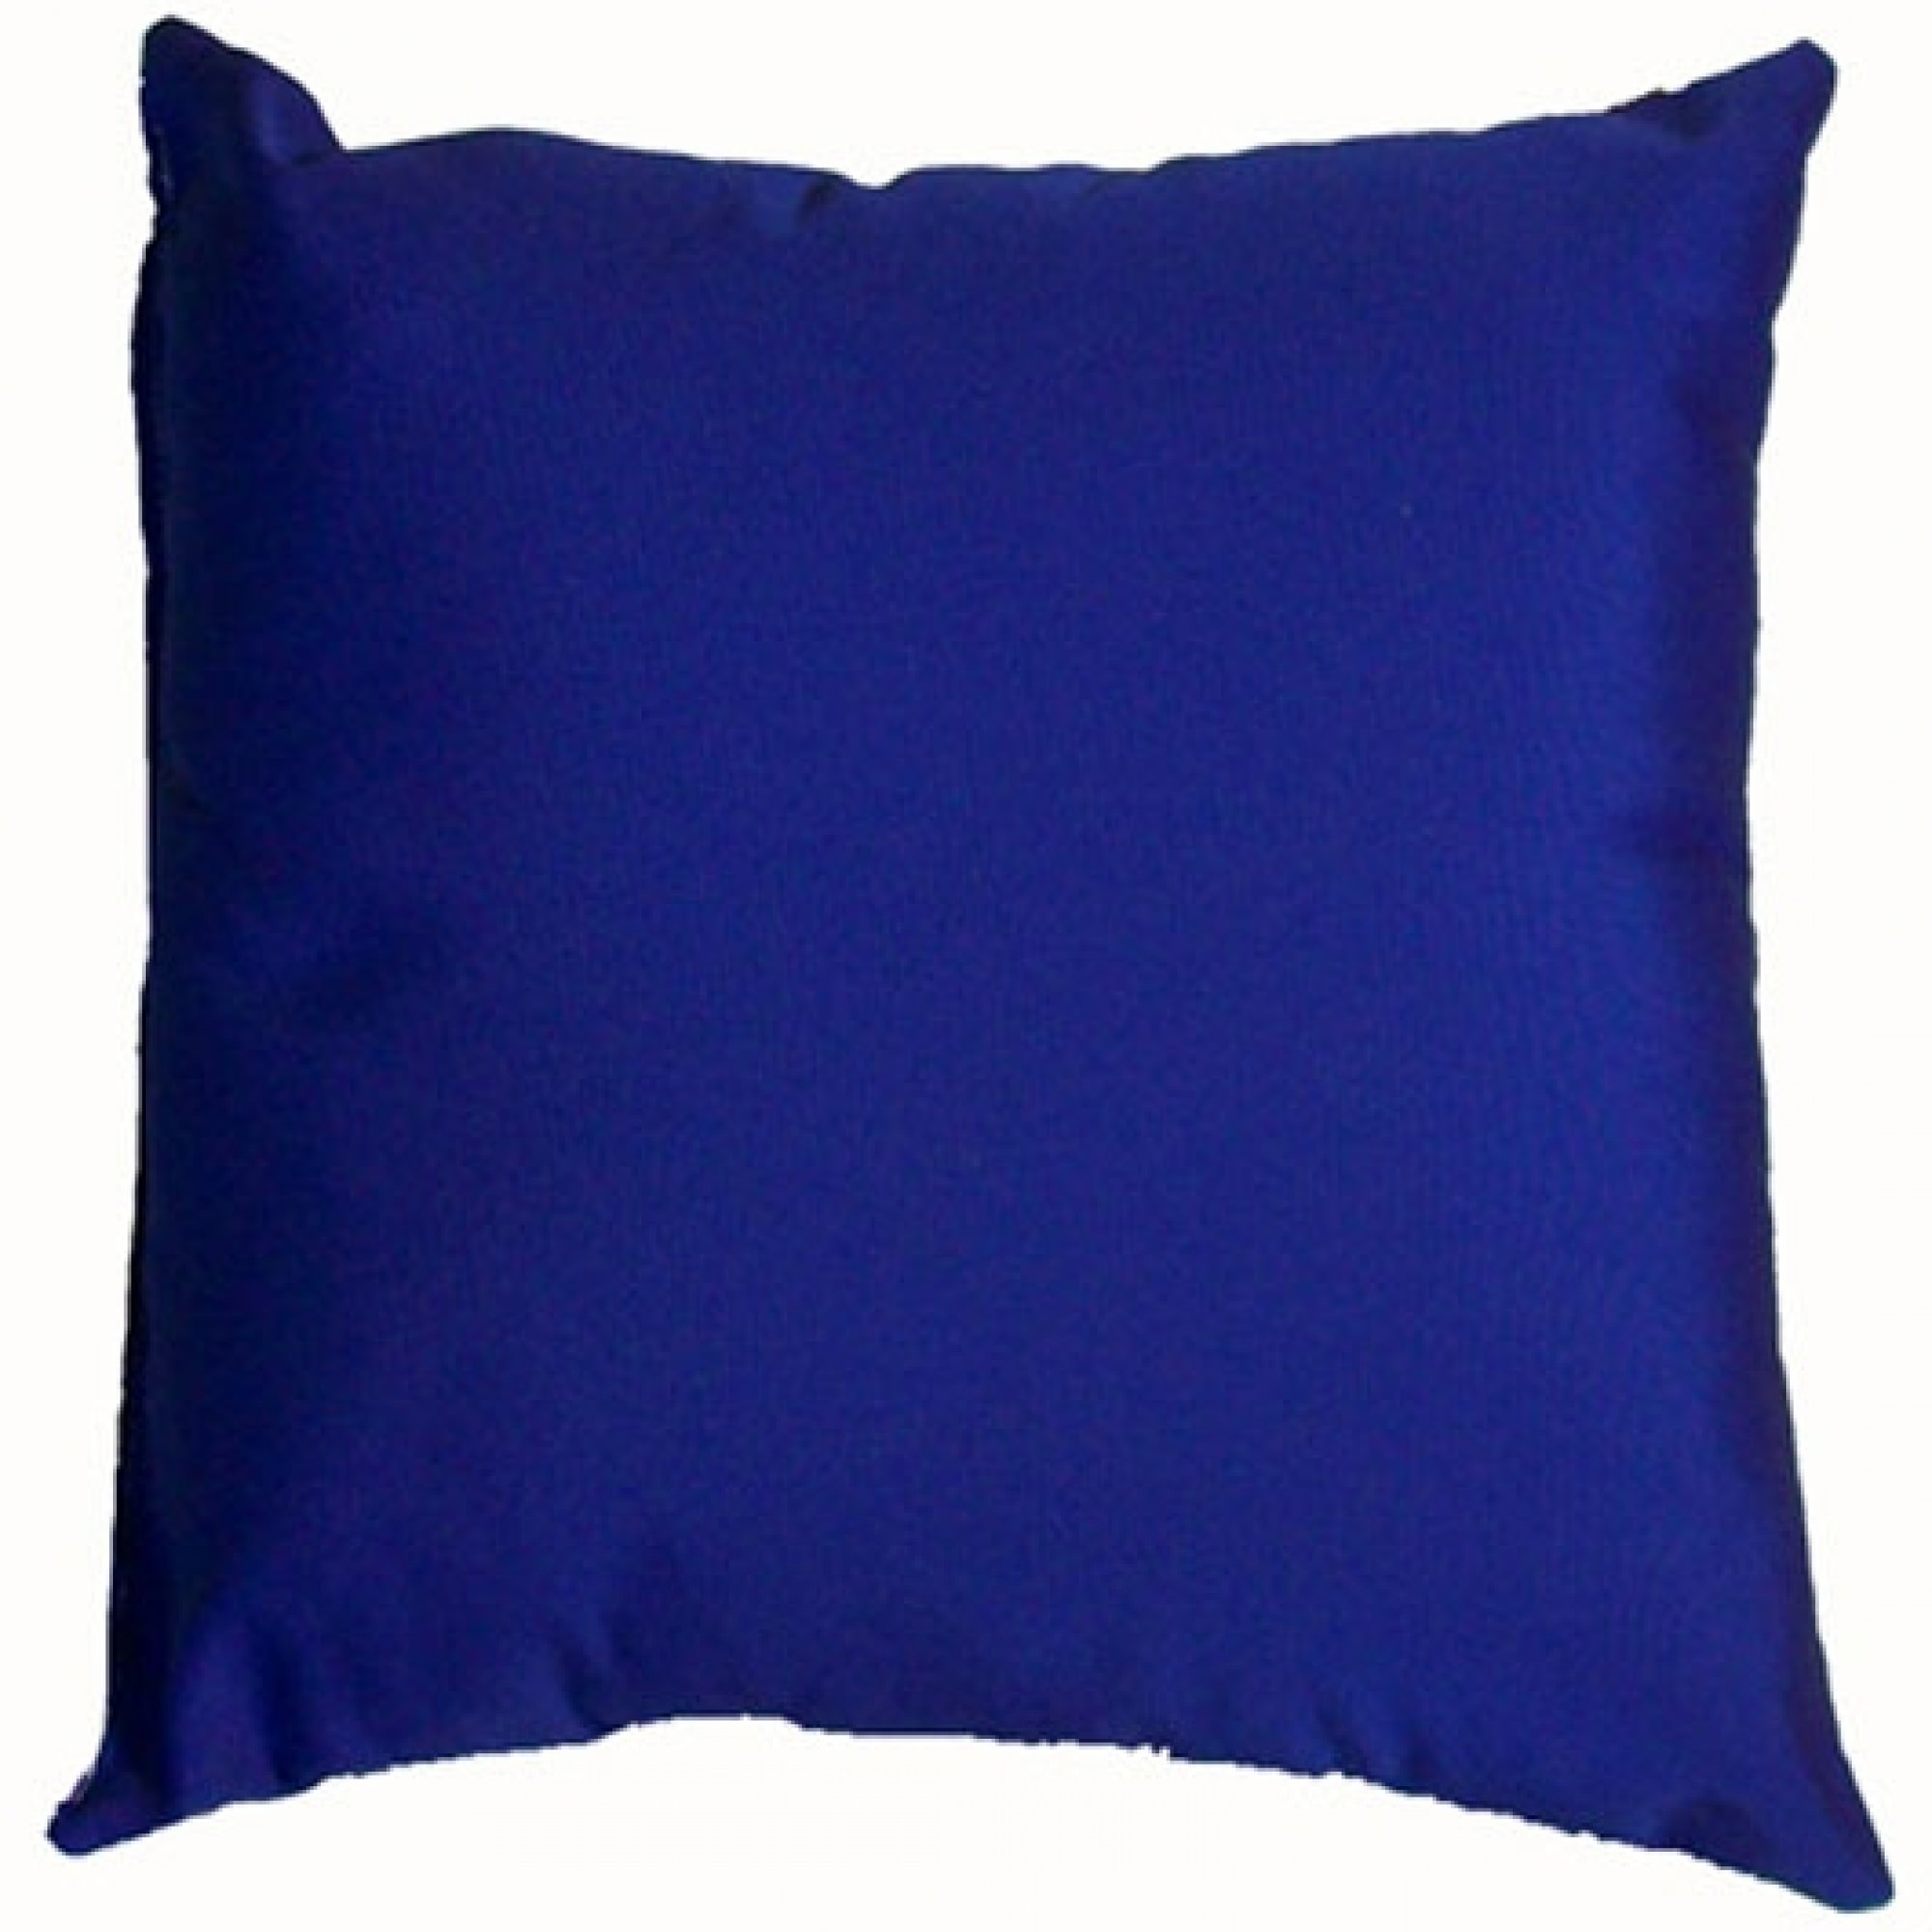 Throw Pillows Royal Blue : Royal Blue Sunbrella Outdoor Throw Pillow DFOHome